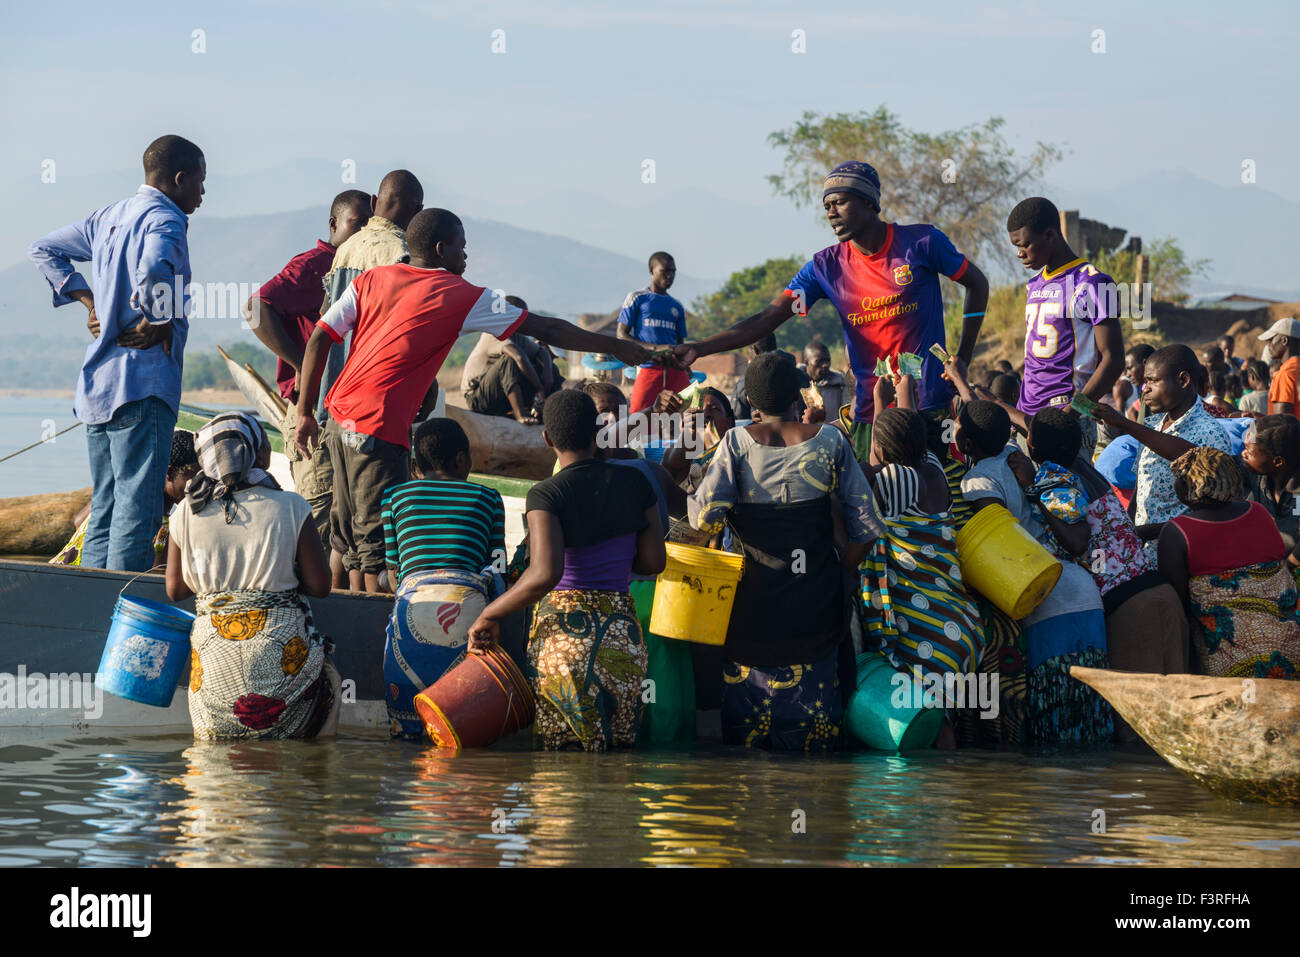 Open-air fish market at the Lake Malawi, Malawi, Africa - Stock Image